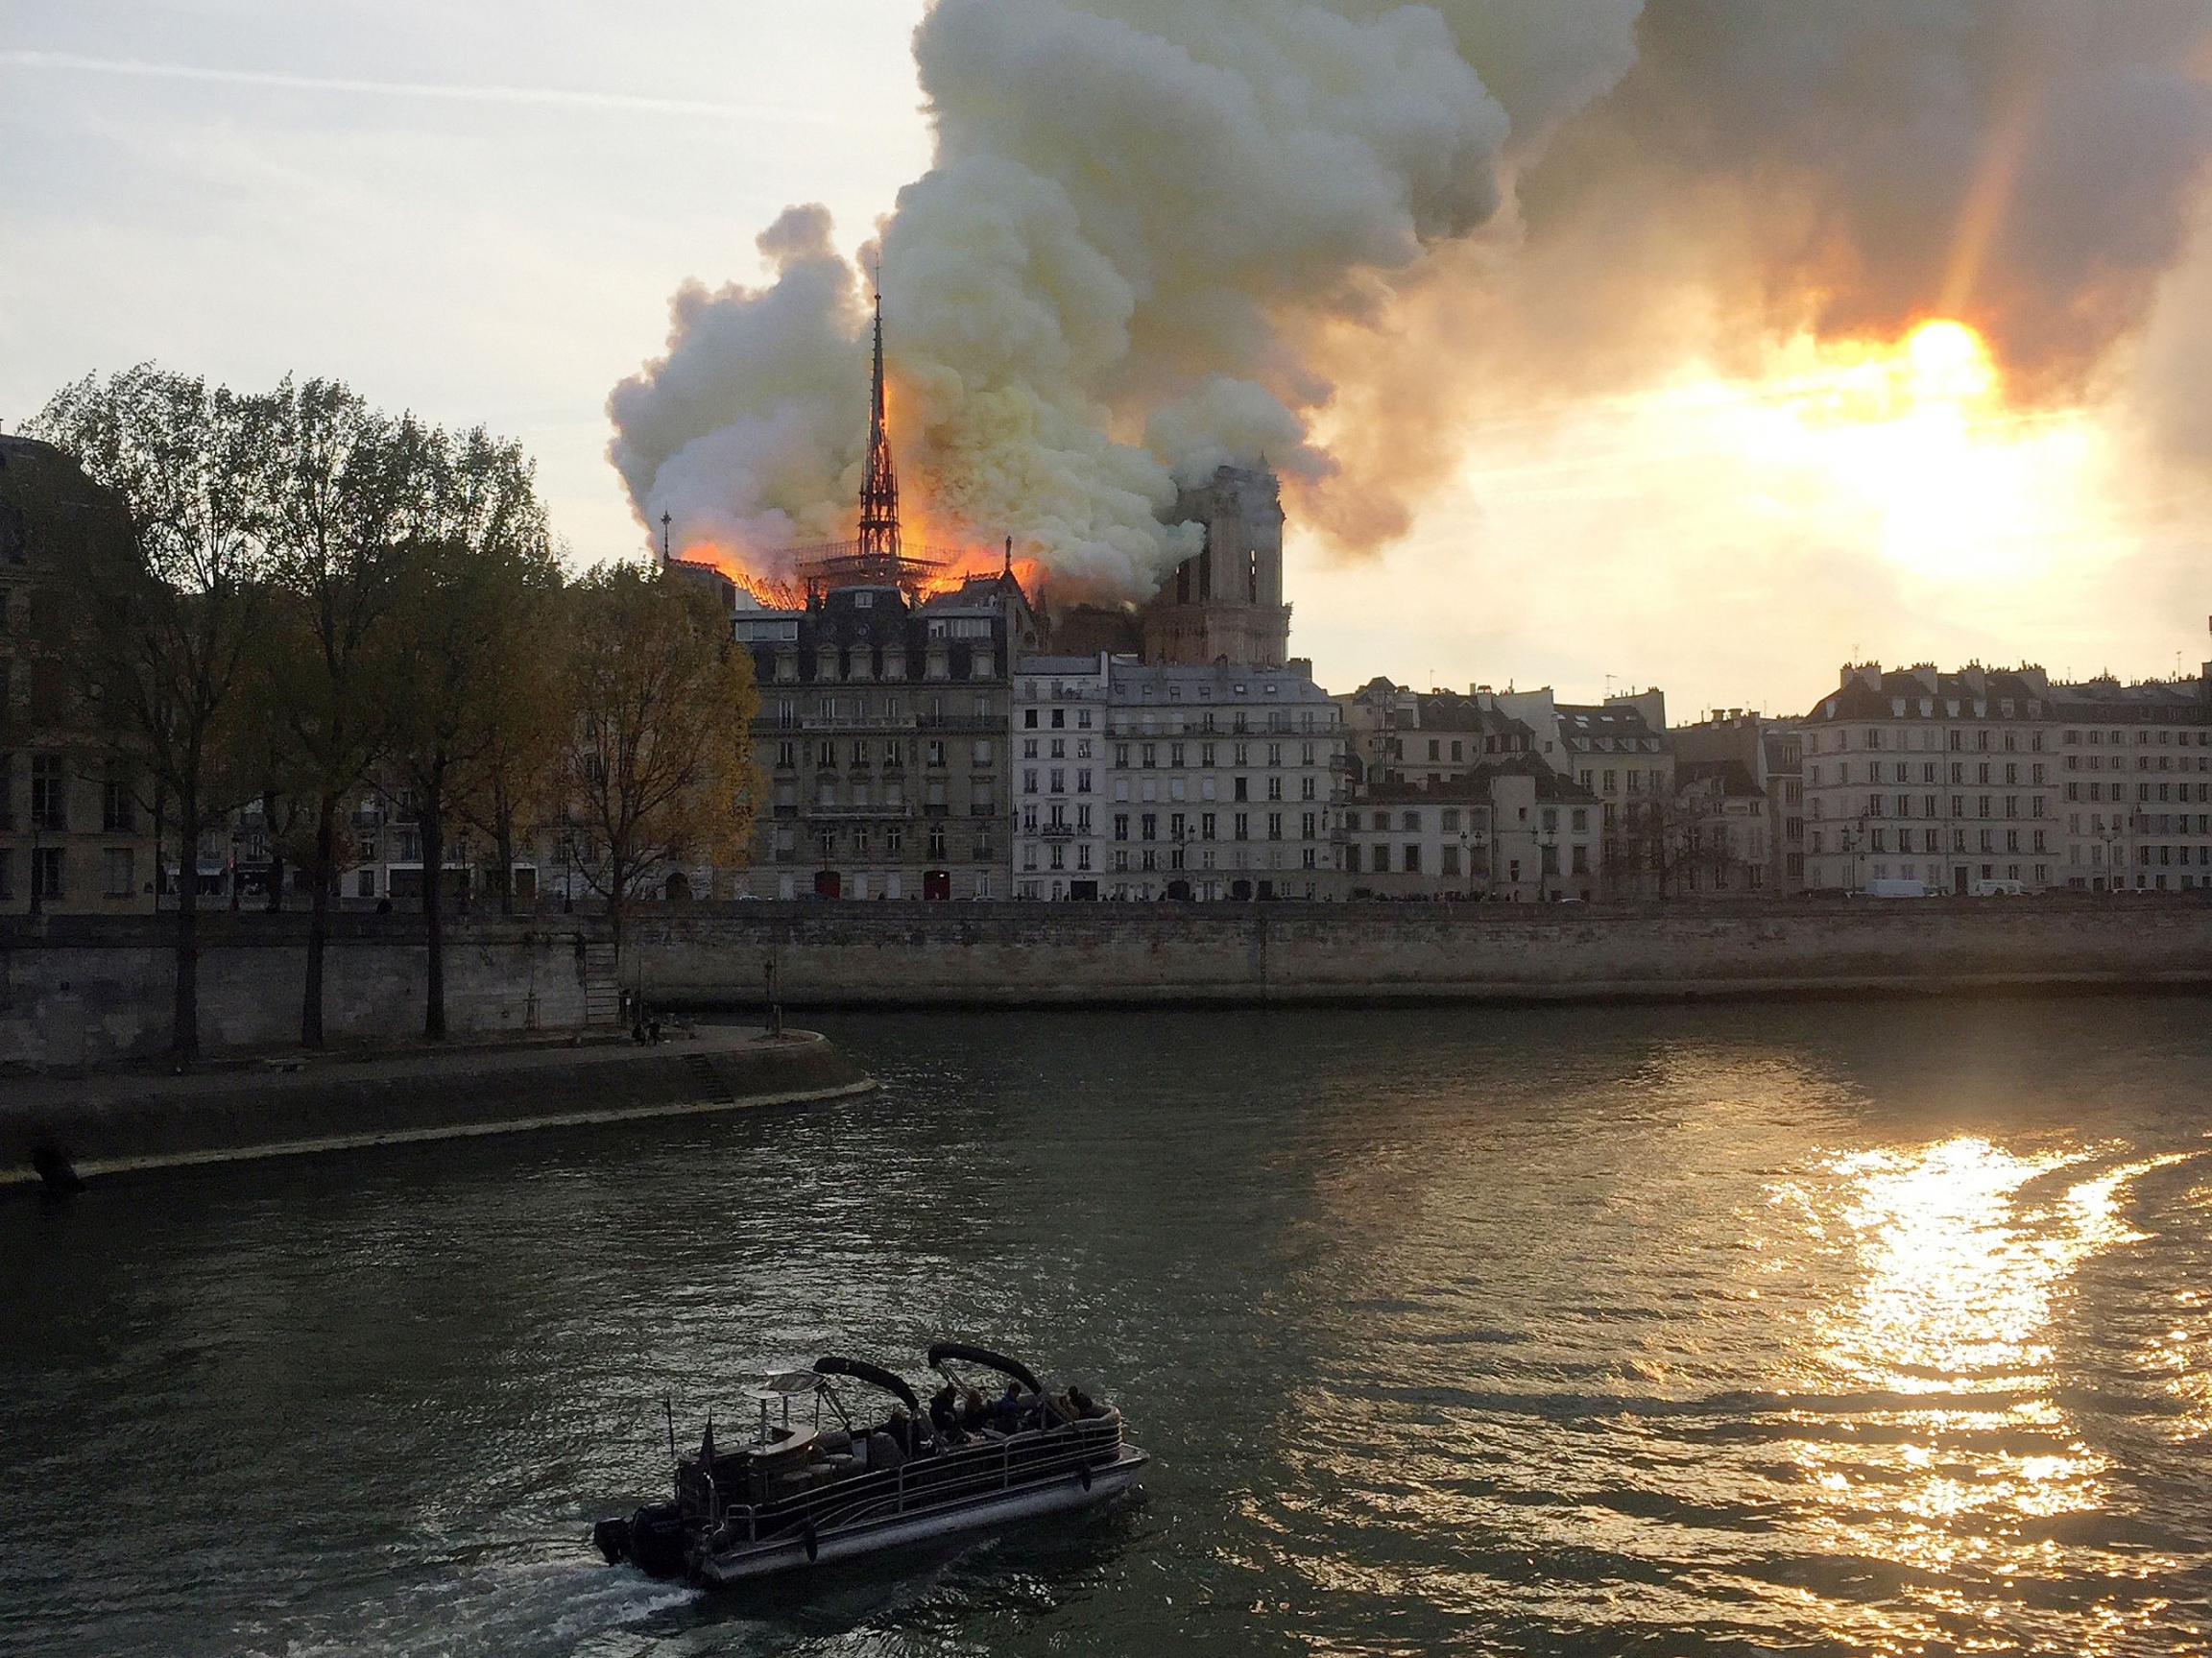 White smoke billows from the top of Notre Dame, see over the river Seine while a boat passes by